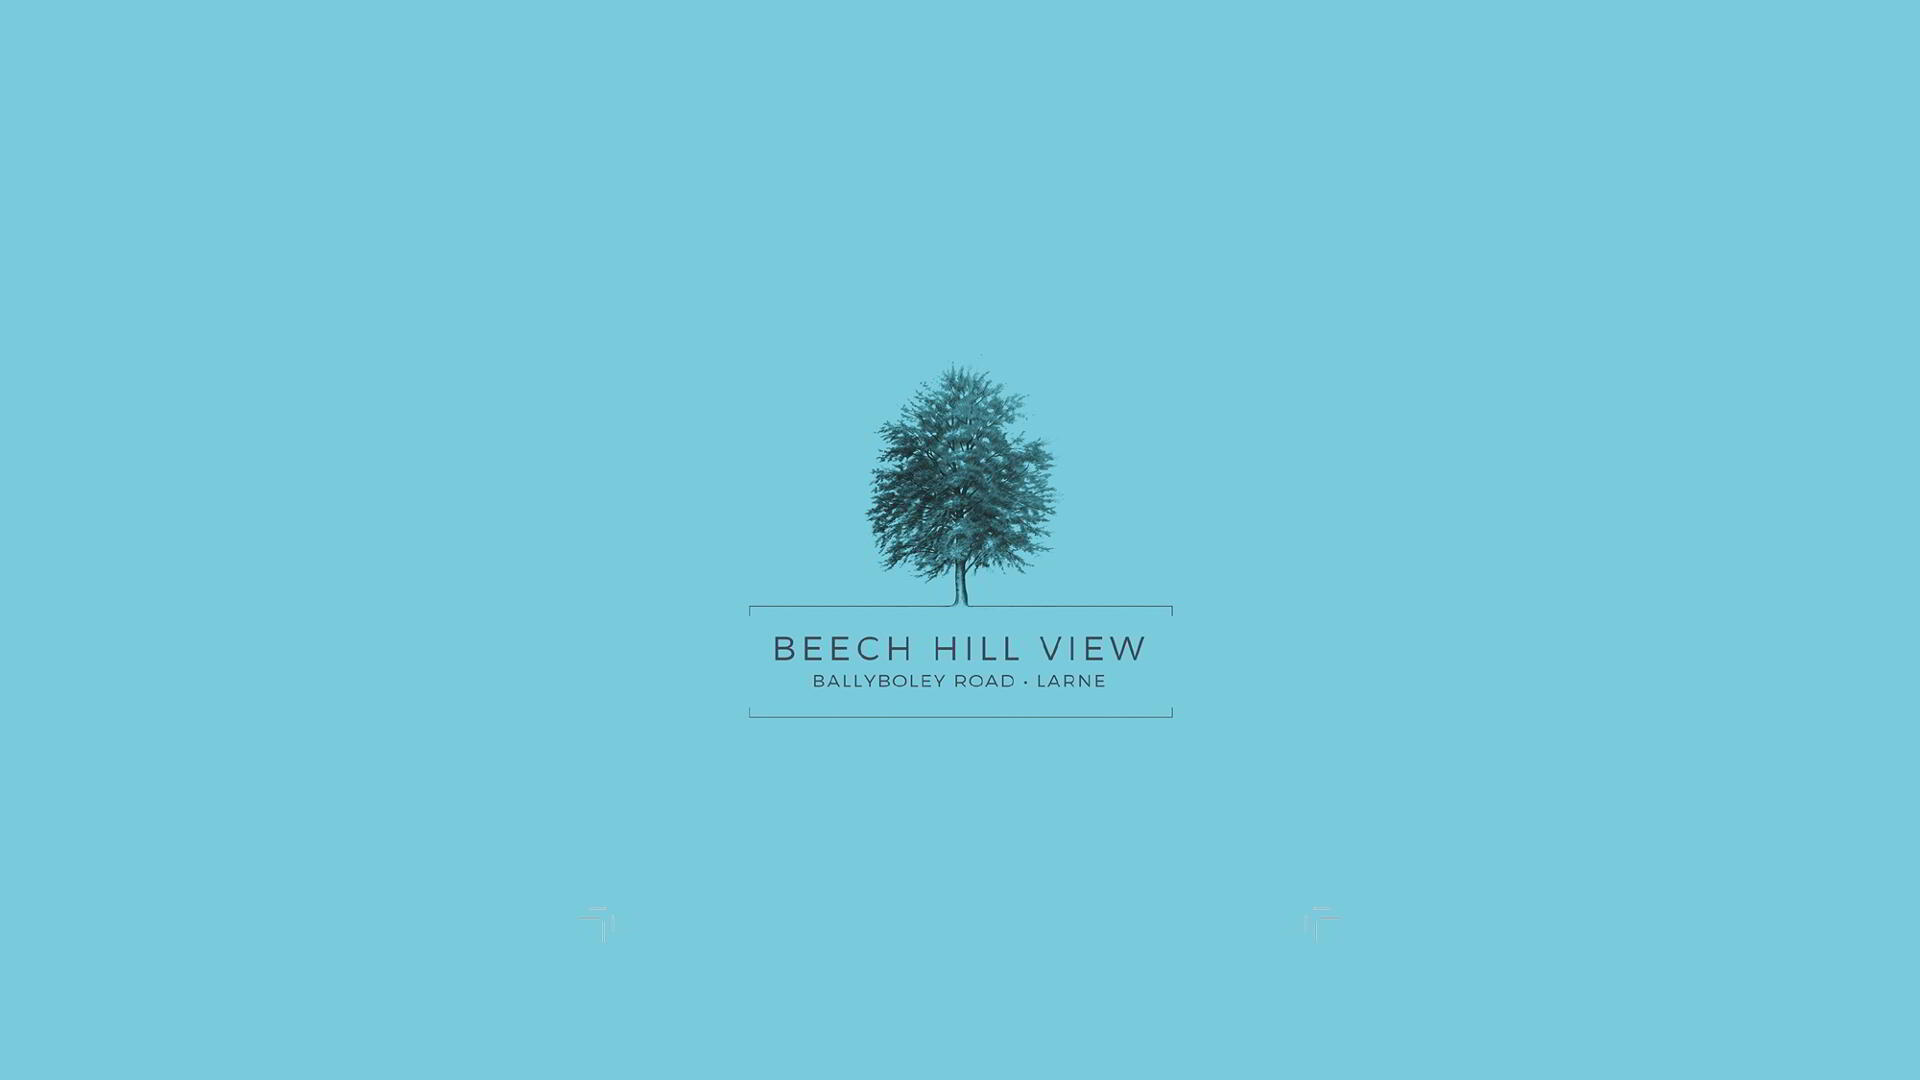 Beech Hill View, Larne